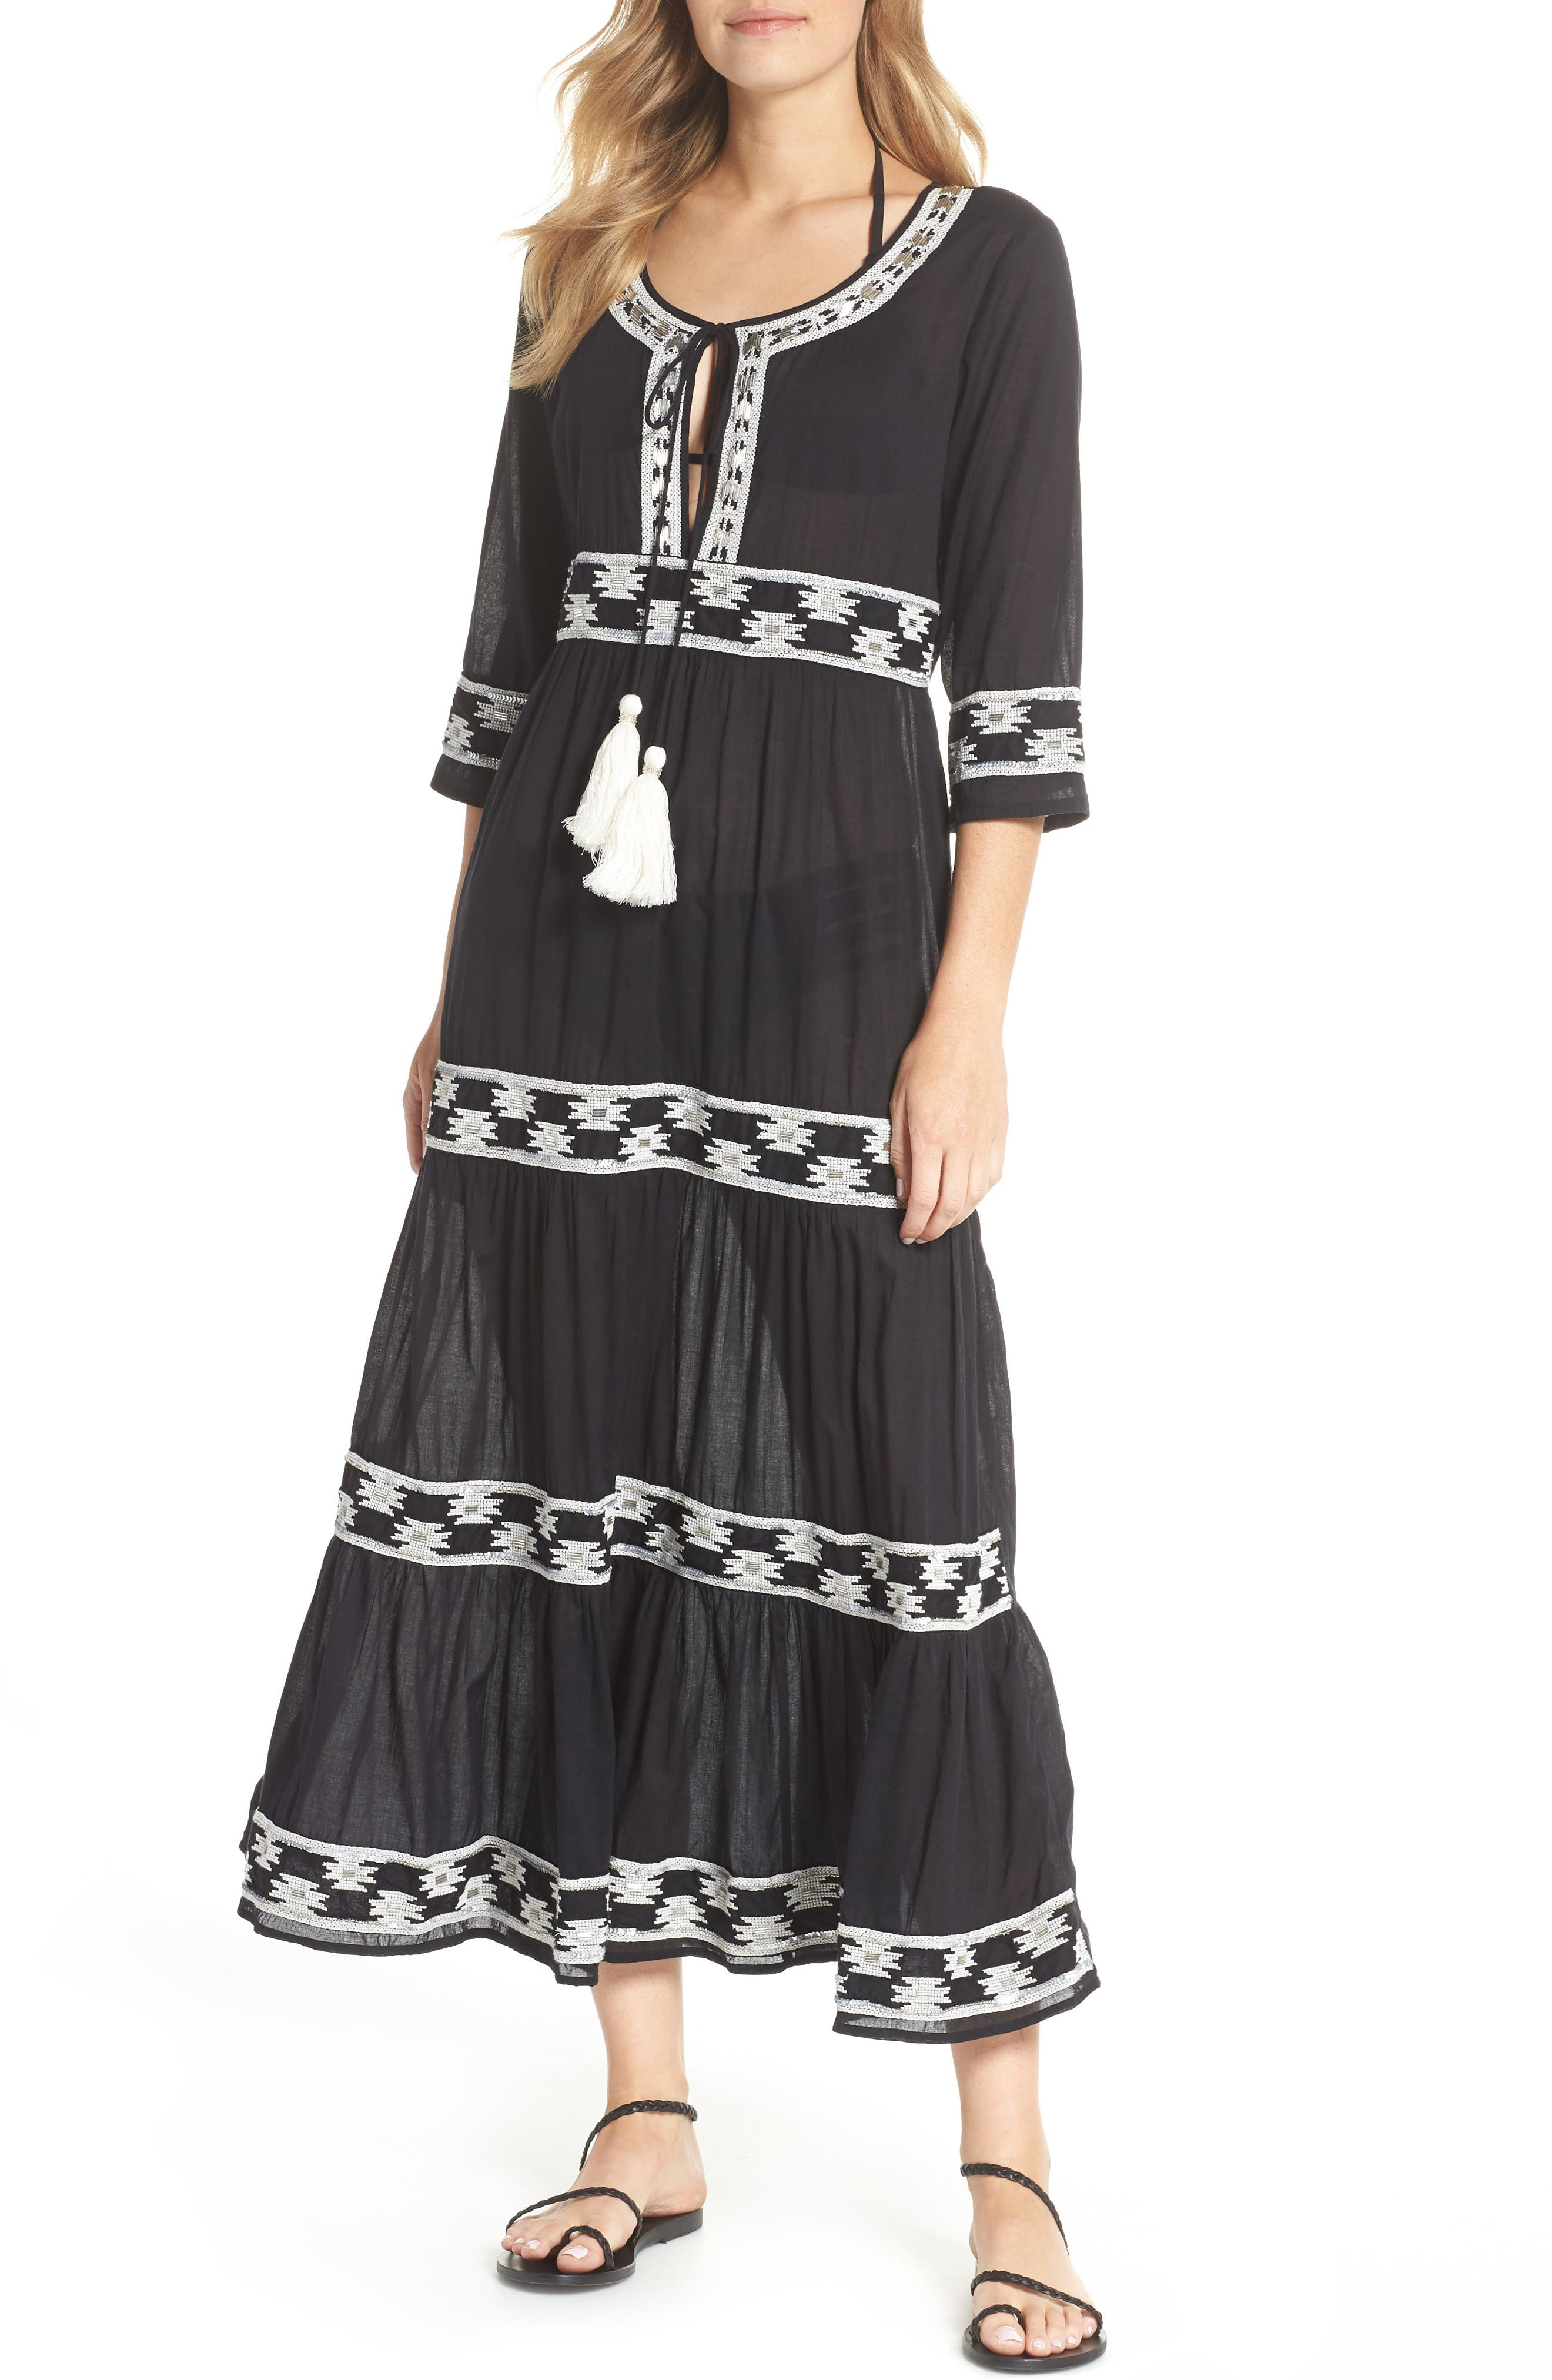 MUCHE ET MUCHETTE Embroidered Cover-Up Dress in Black/ White